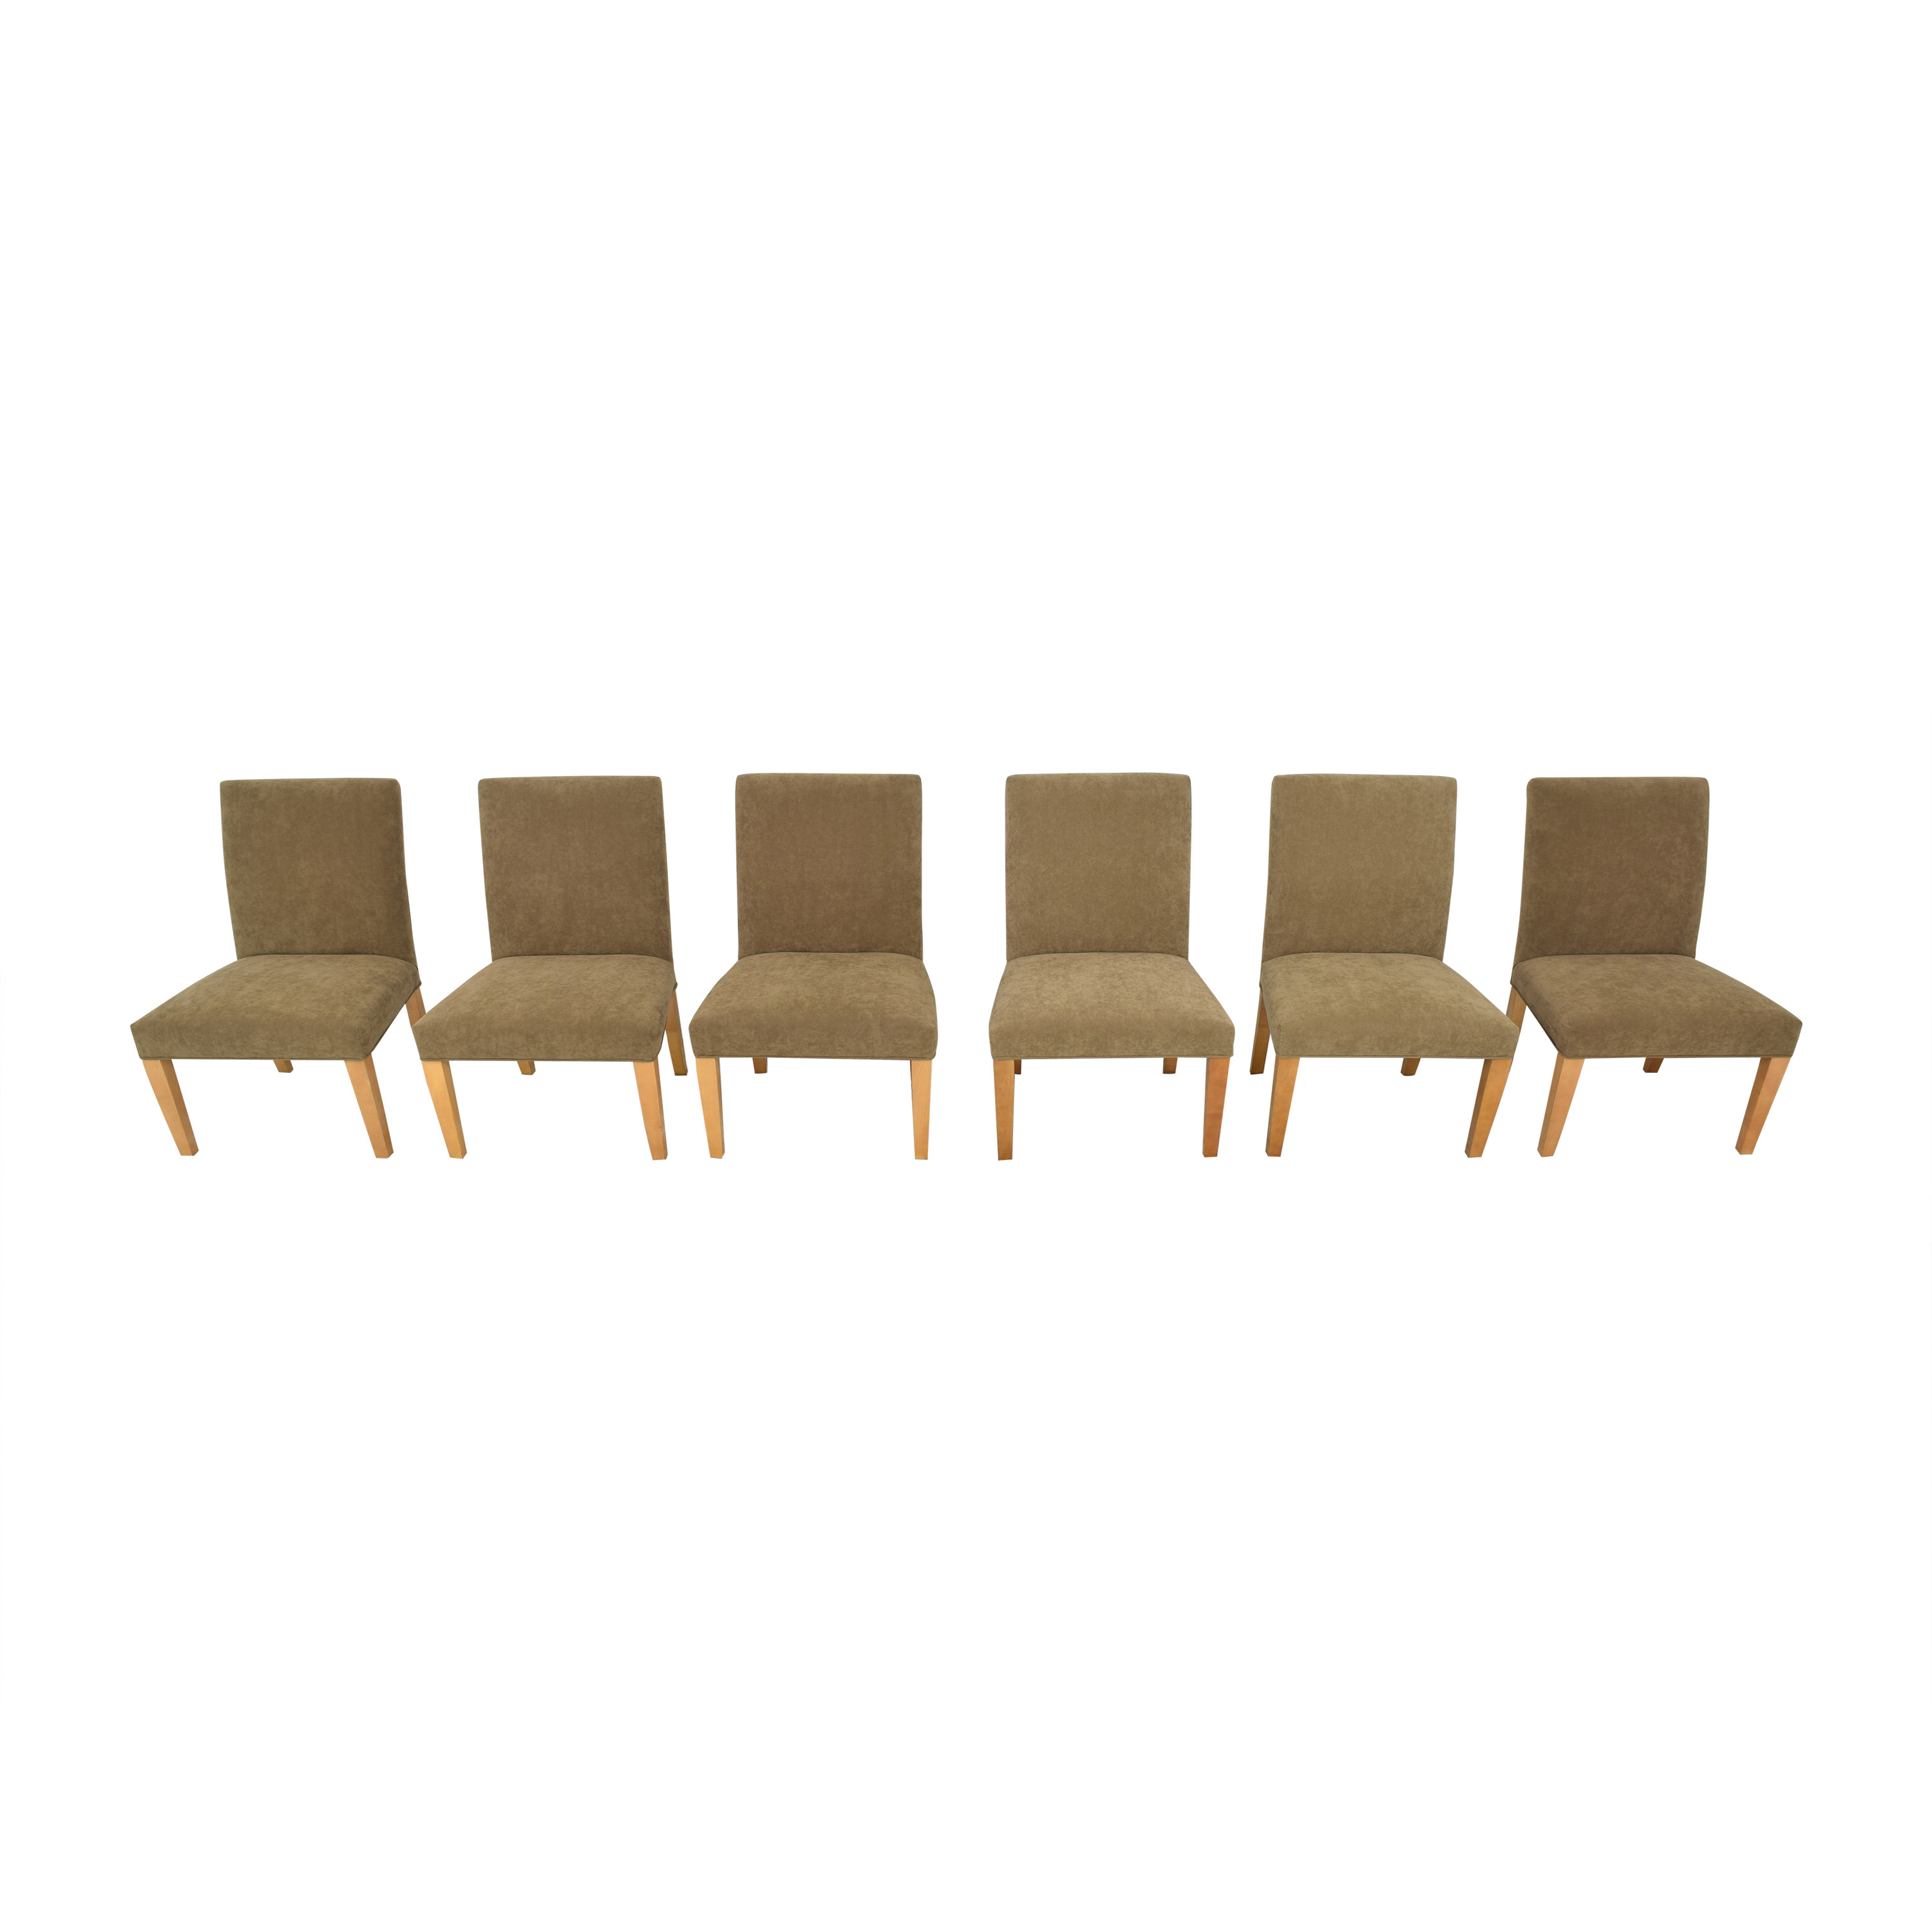 Crate & Barrel Crate & Barrel Miles Dining Chairs Chairs